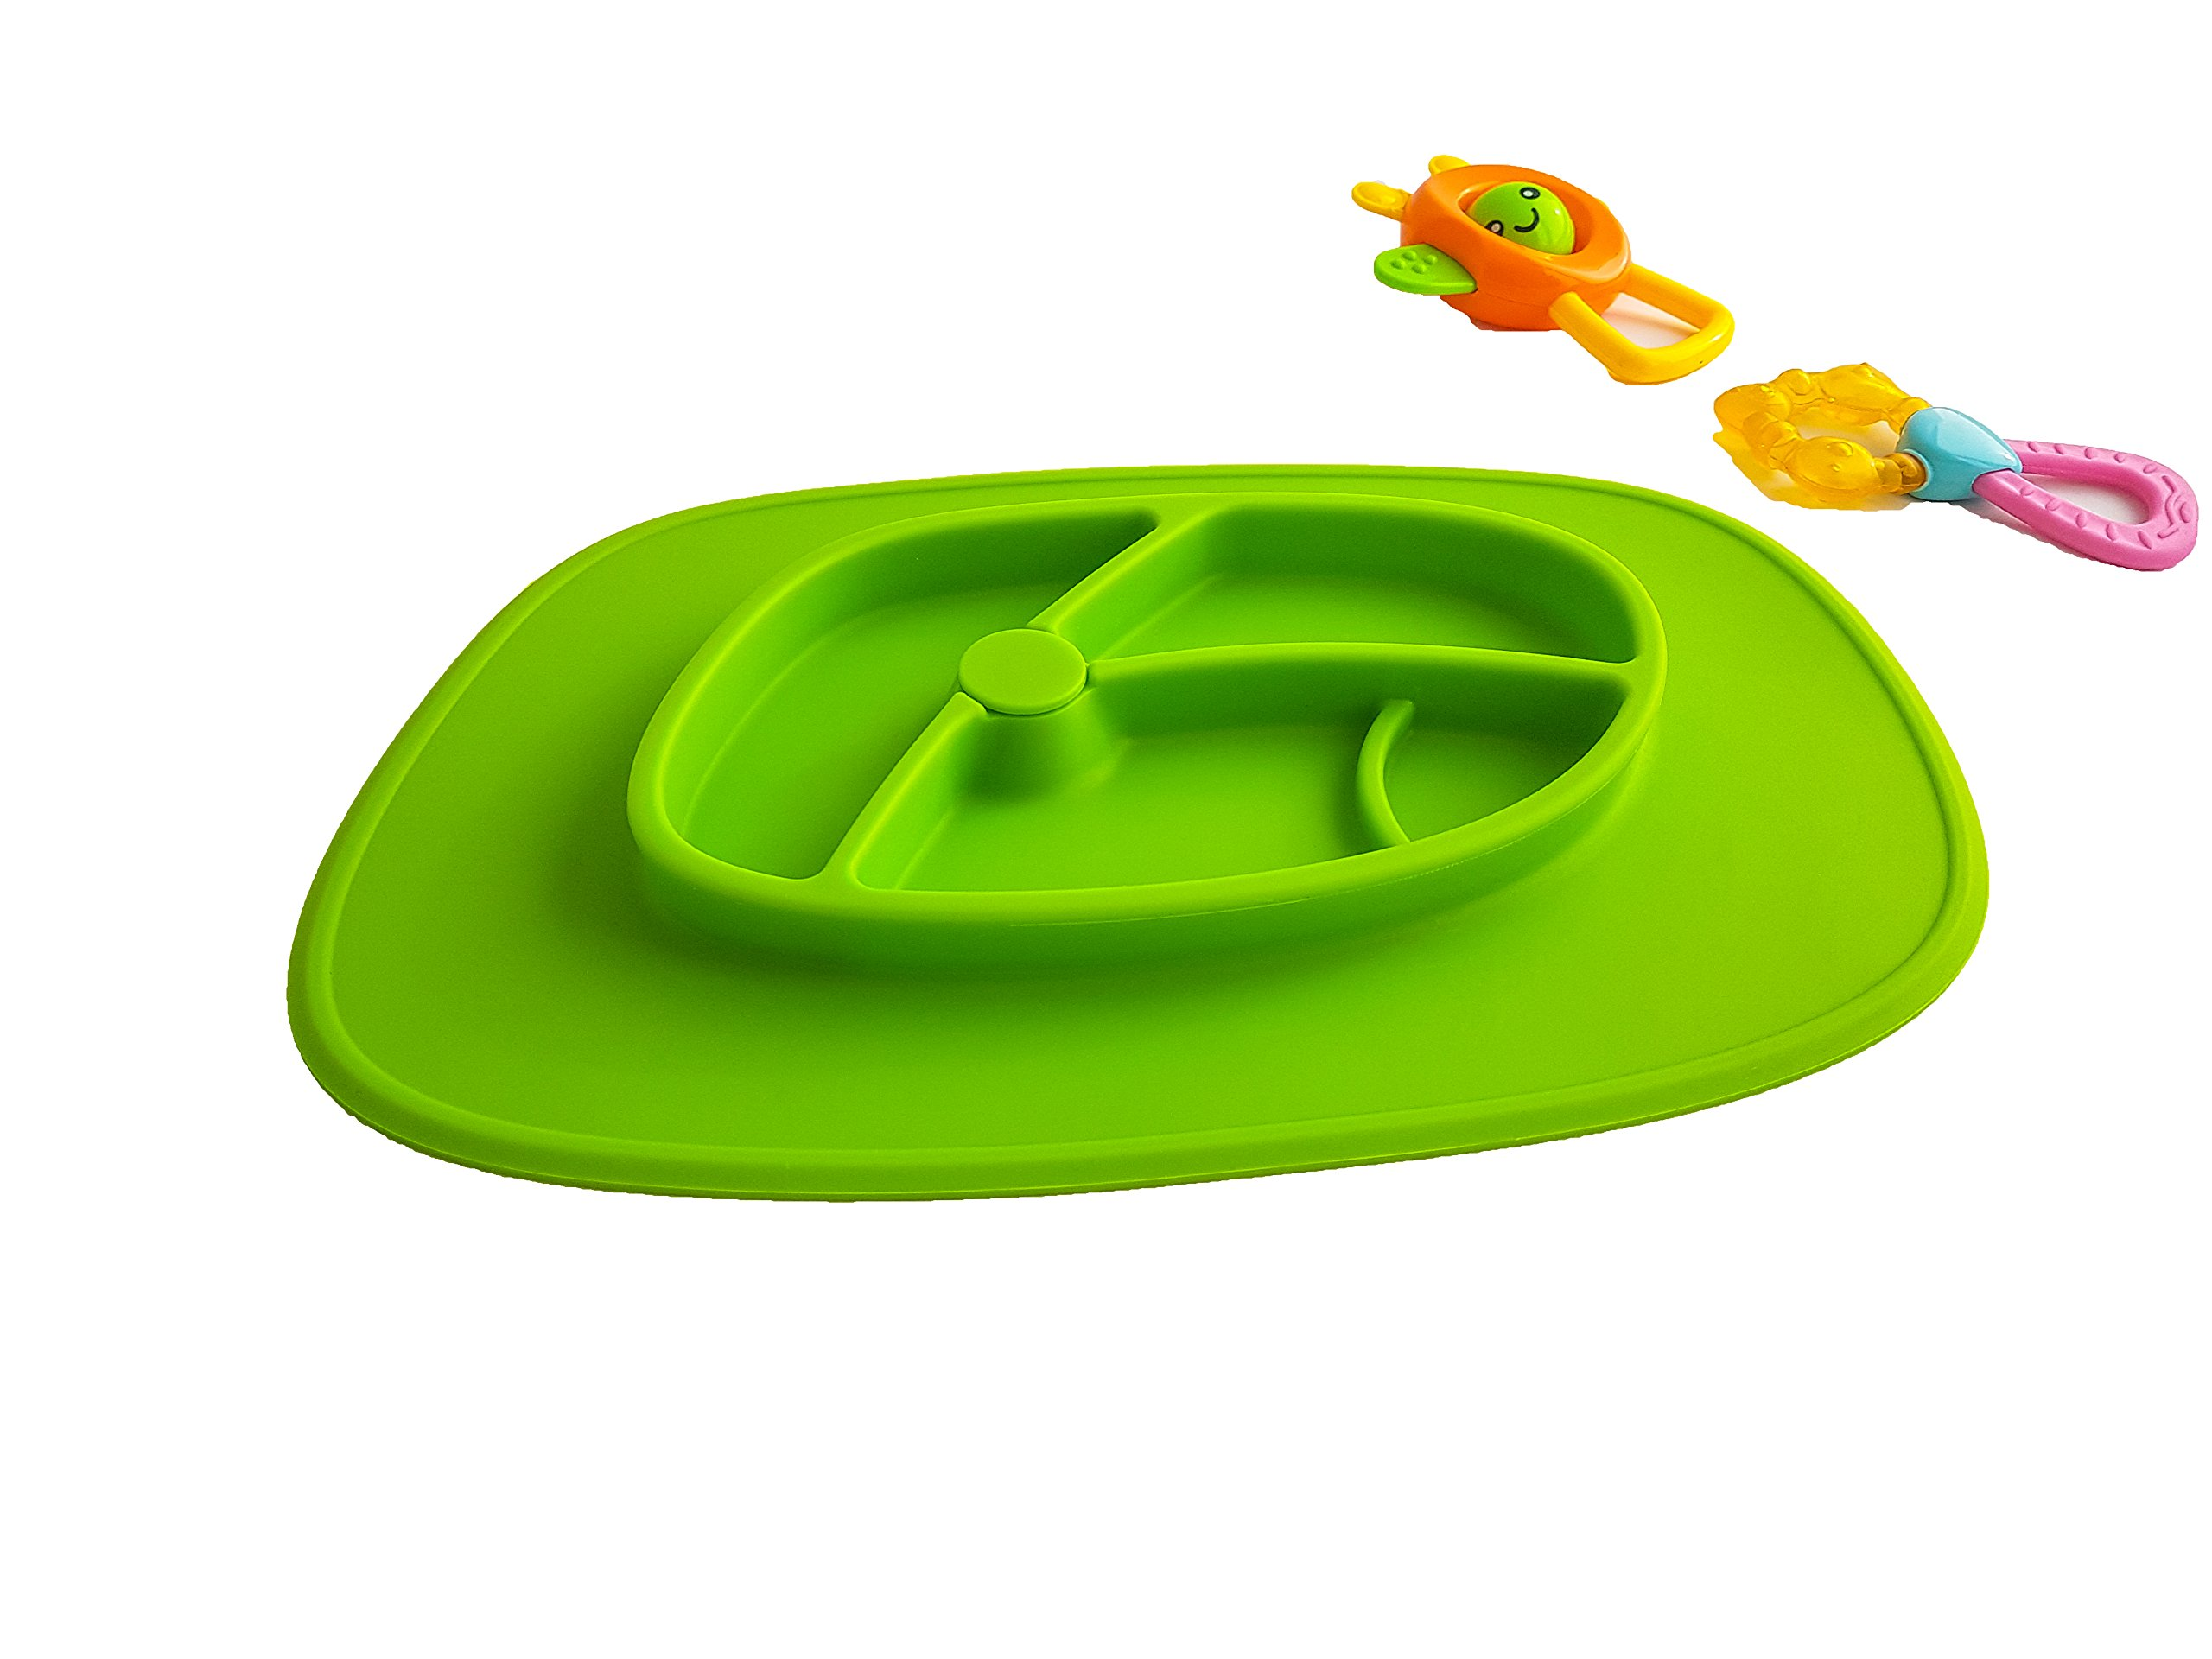 EZY ACTIVE - Non Slip Silicone Placemat Plate for kids - Green